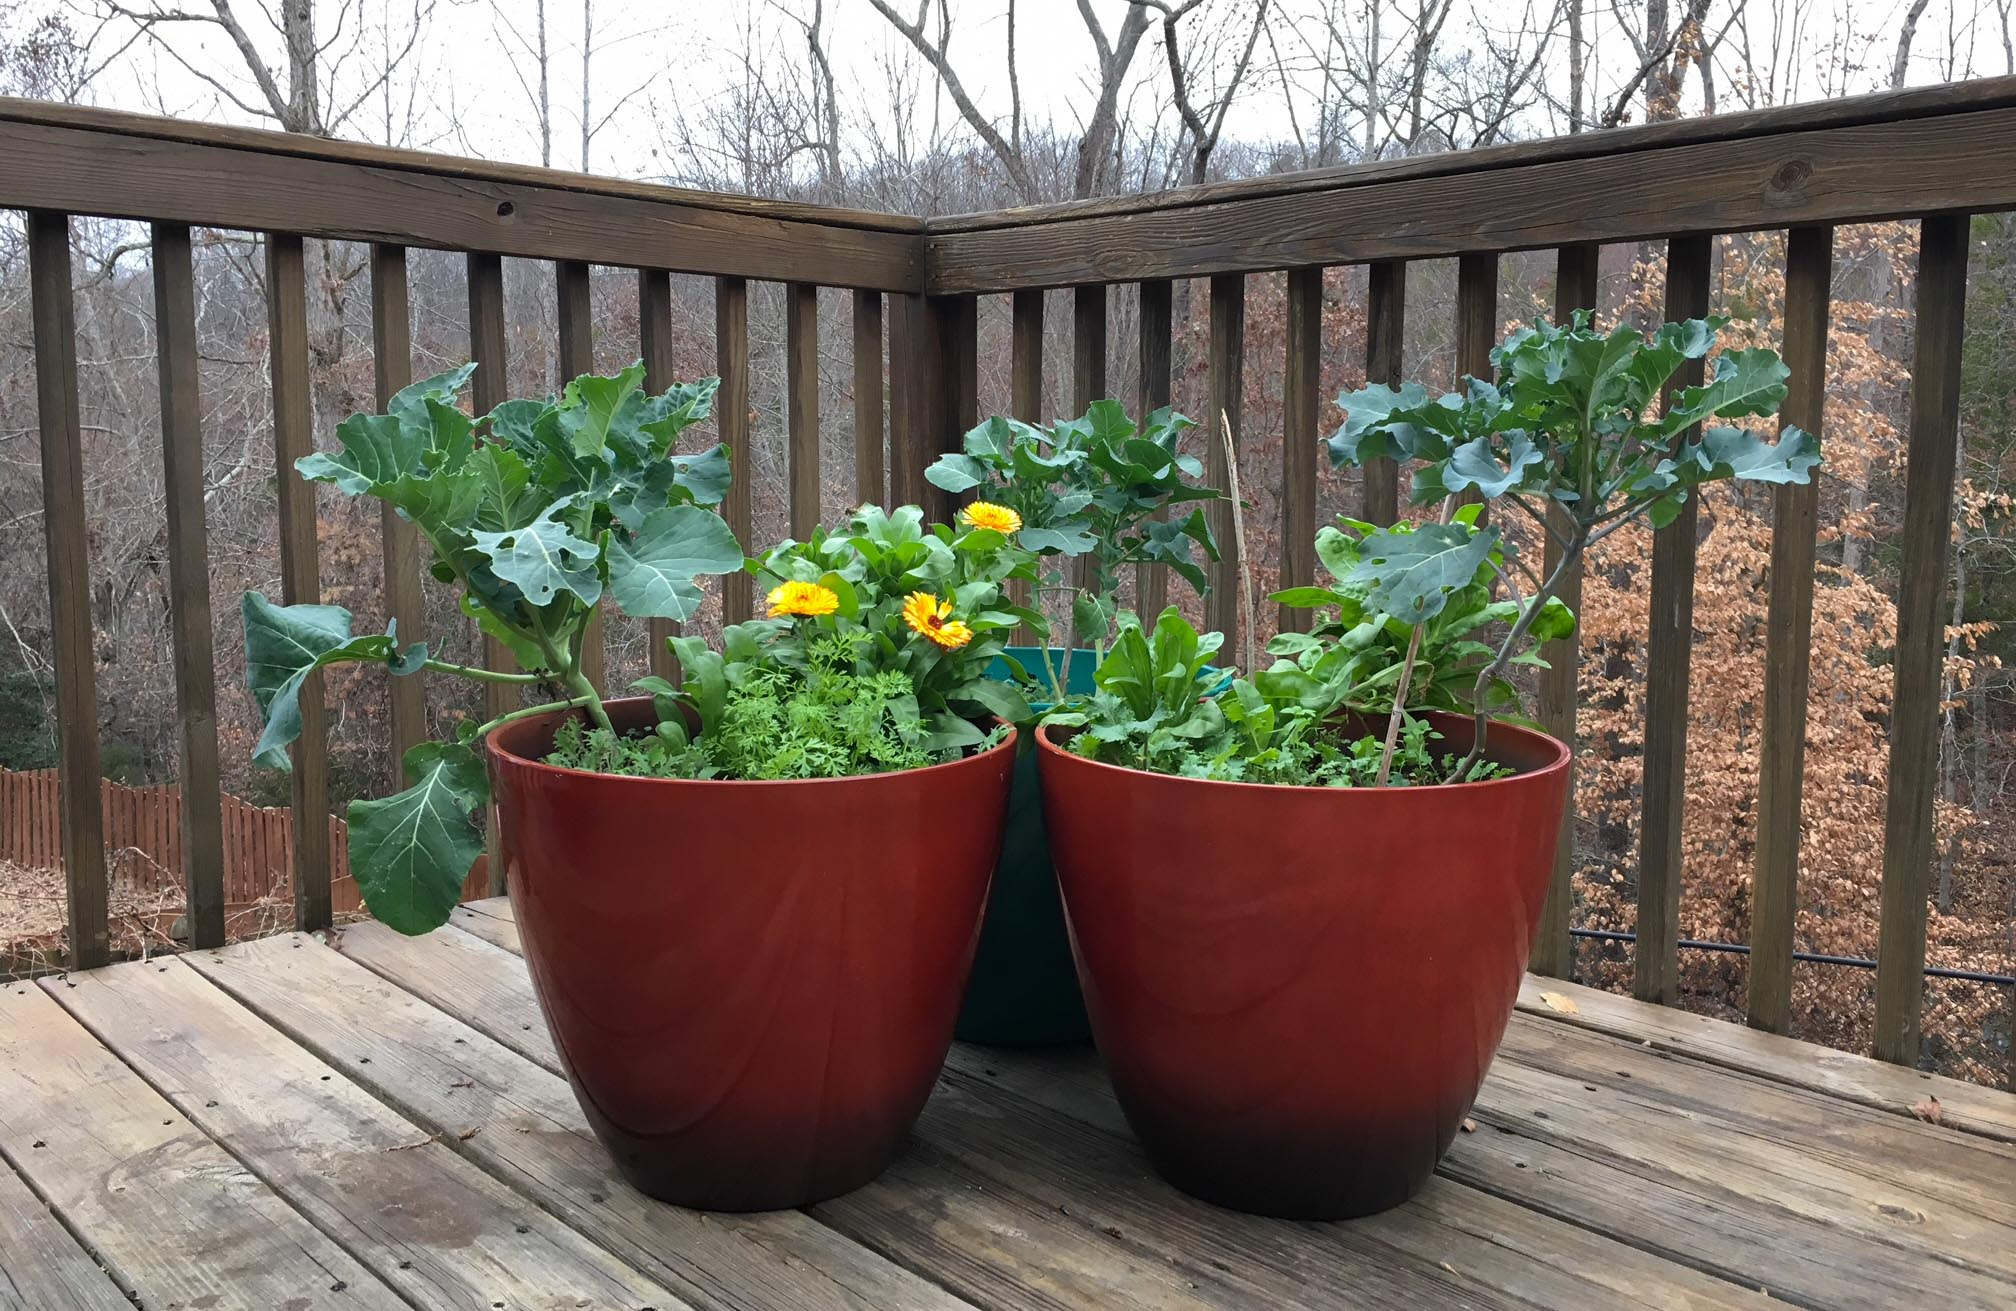 We also like to grow cool weather crops in containers throughout the winter. Seeing calendula flowers and green brassicas growing on our back porch on a dreary winter day helps brighten our moods - and put good food on the table. If temps drop too low, we can temporarily bring the pots indoors until it warms back up. Container gardening questions answered.